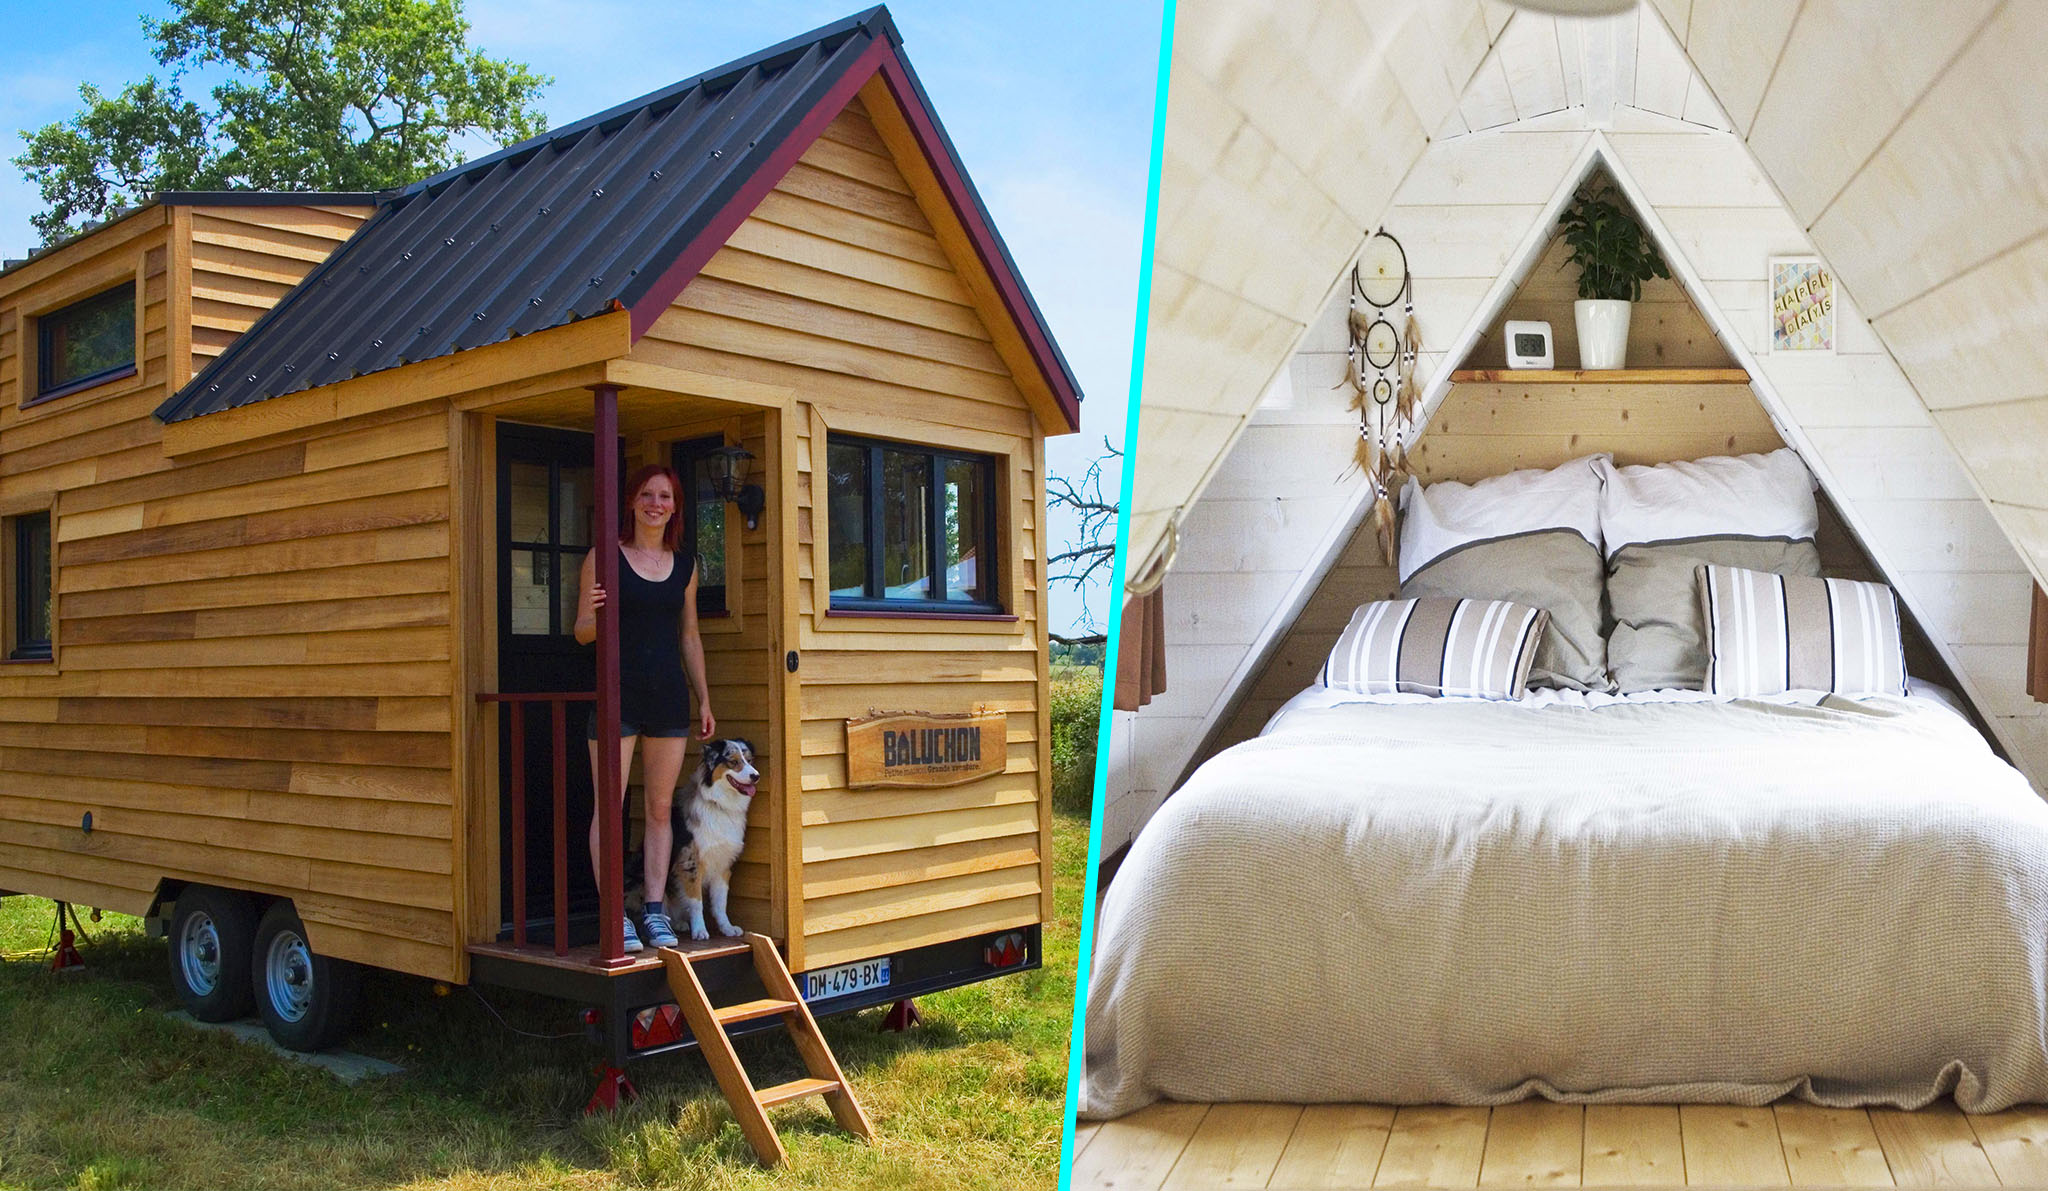 Elle cr e une tiny house fran aise et d montre que rien n for Construire sa tiny house